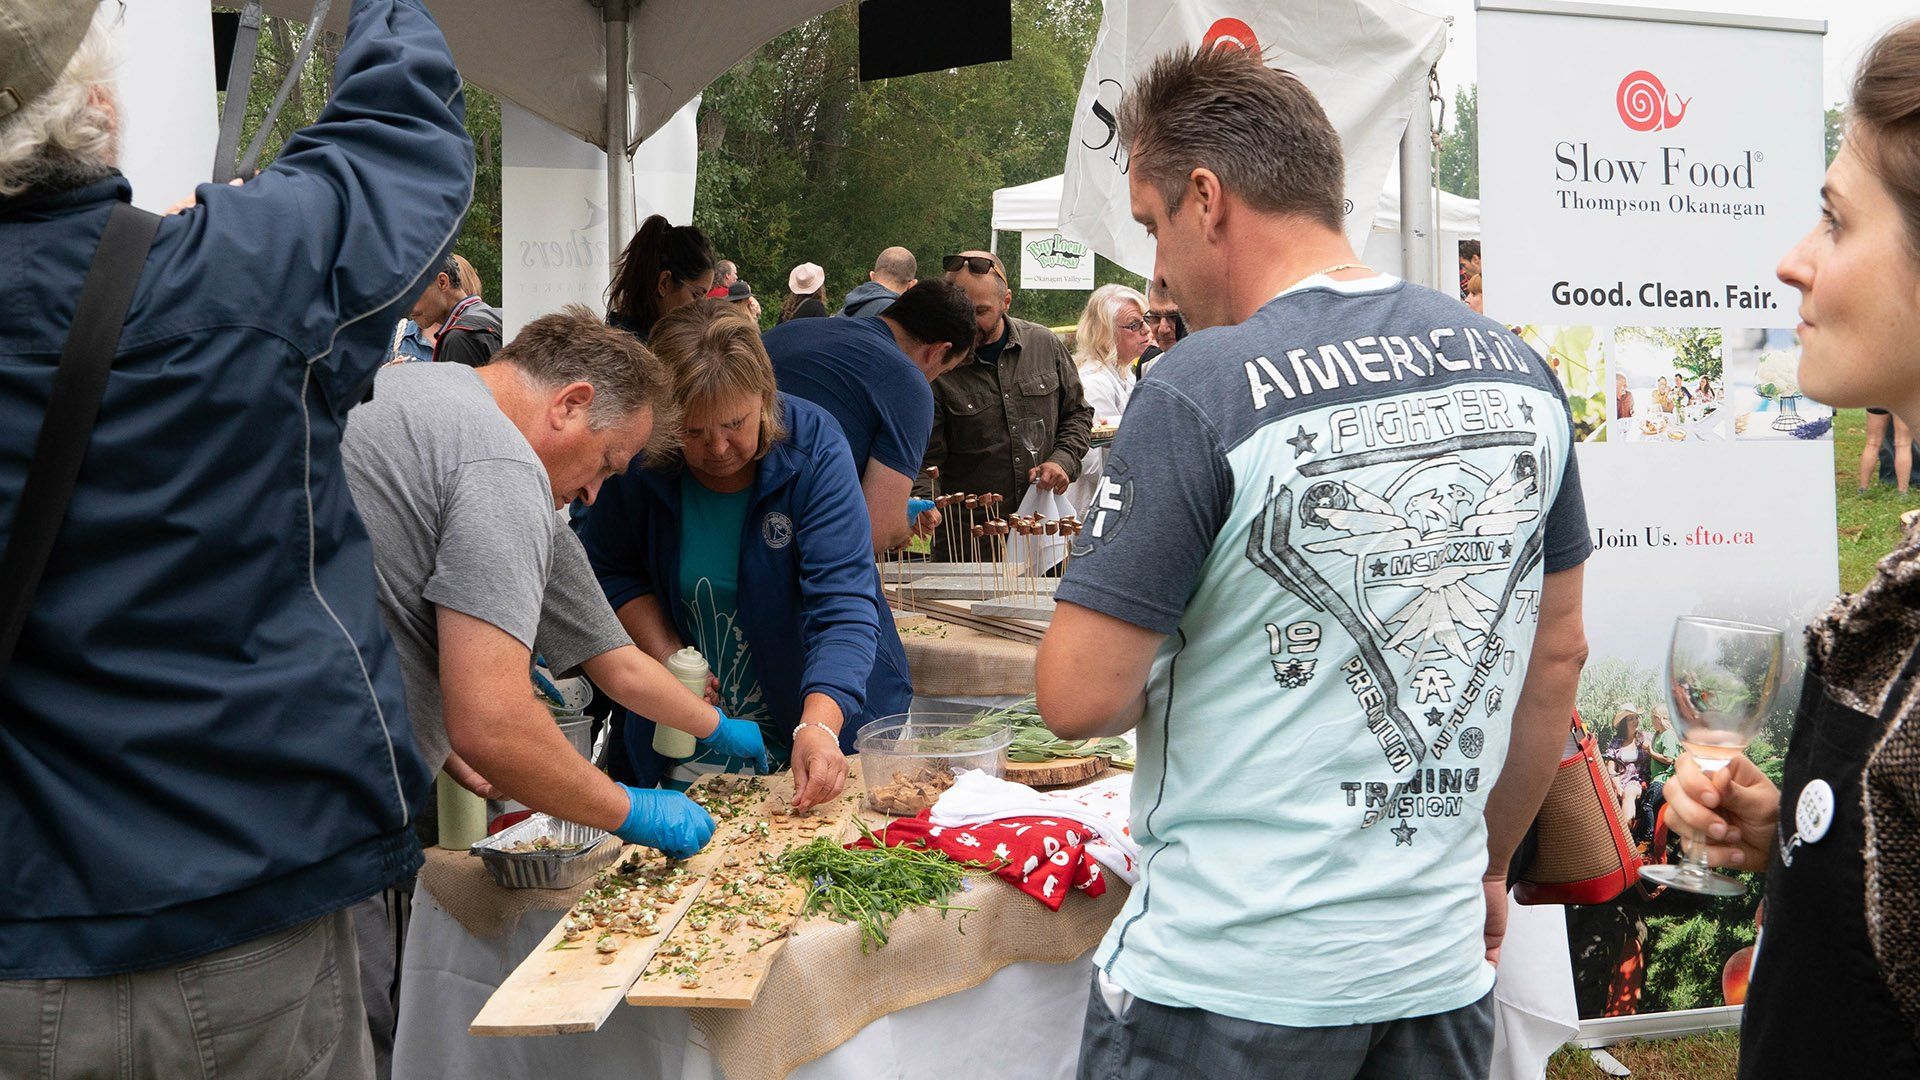 http://spatulamedia.ca/wp-content/uploads/2019/05/feast-of-fields-slow-food-tent.jpg